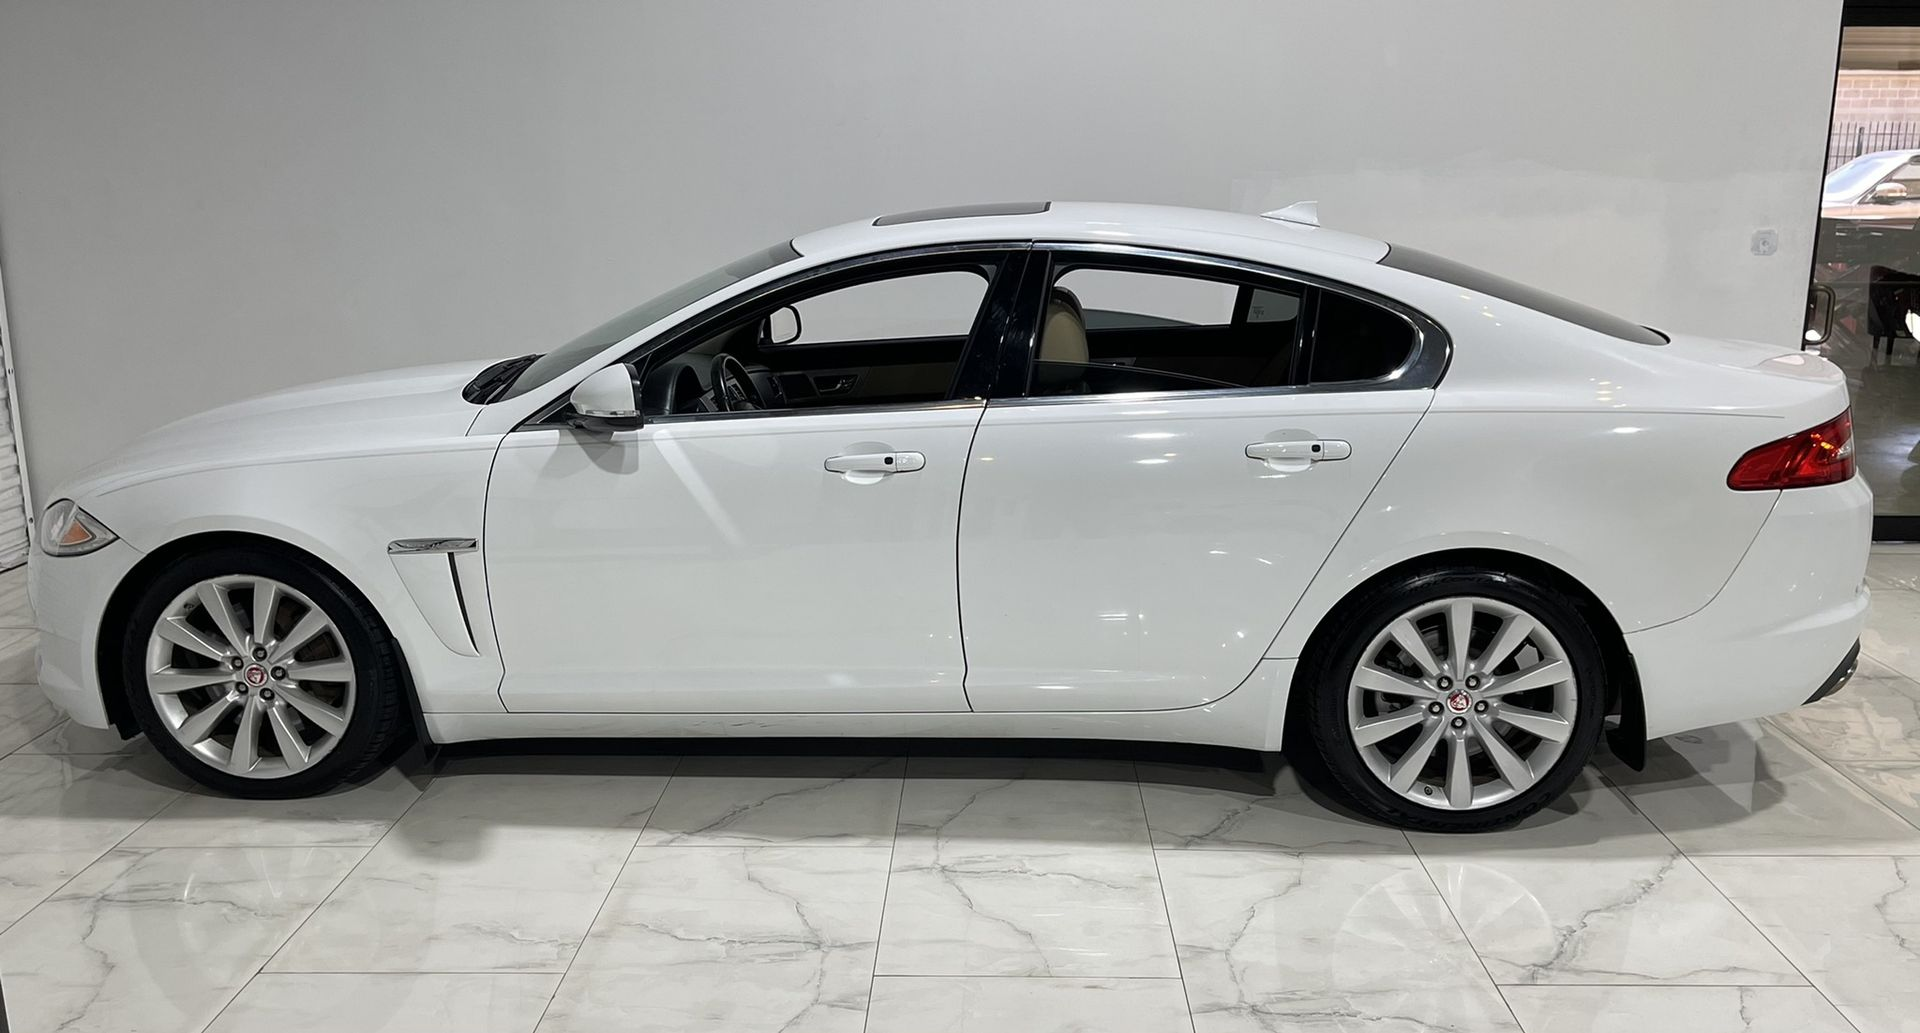 USED JAGUAR XF 2014 for sale in Houston, TX | IDrive Auto ...